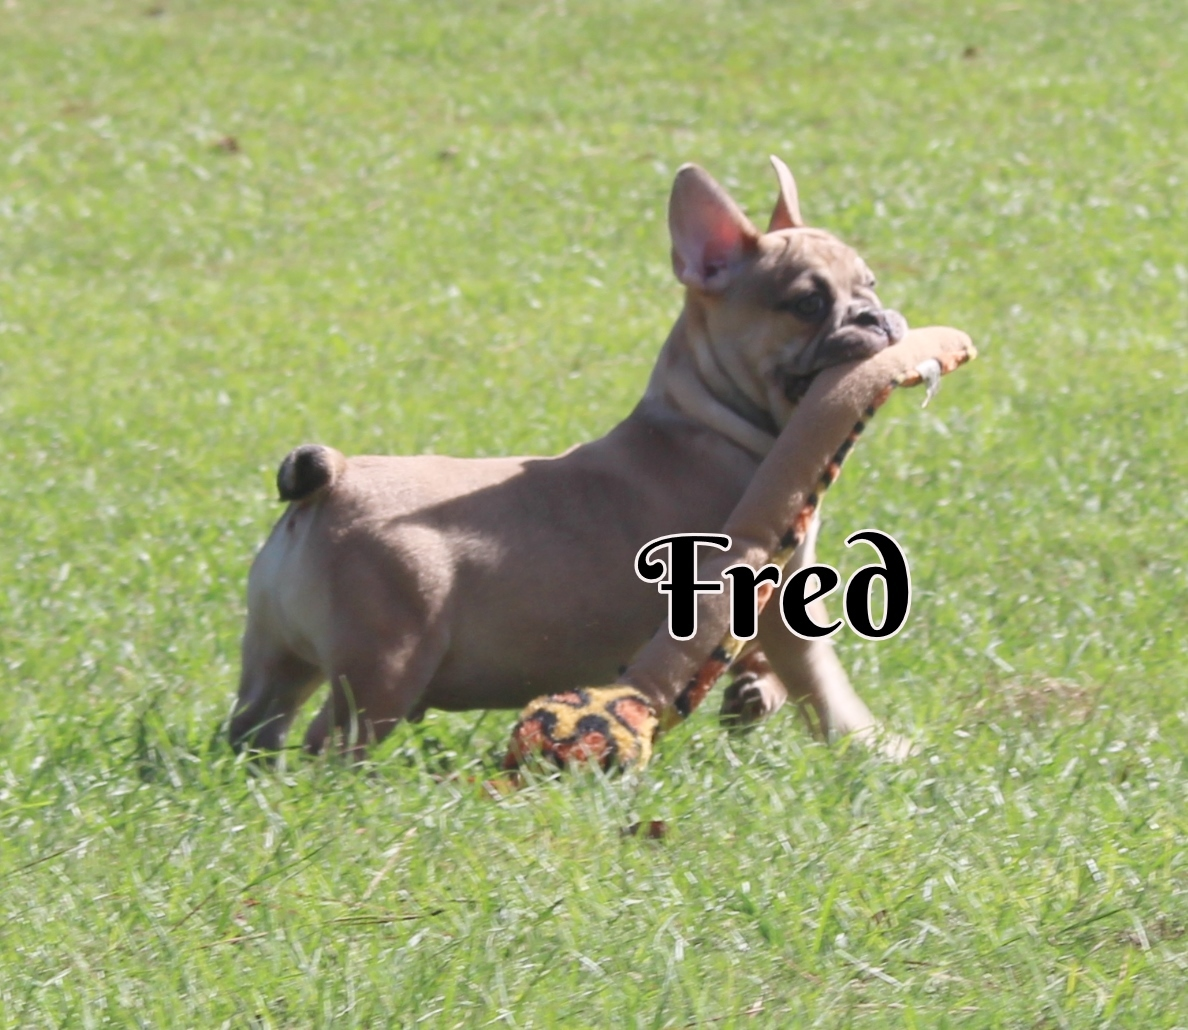 #FrenchBulldogPuppies #MerleFrenchBulldog #Frenchie #AvailablePuppies #AKCRegFrenchBulldog